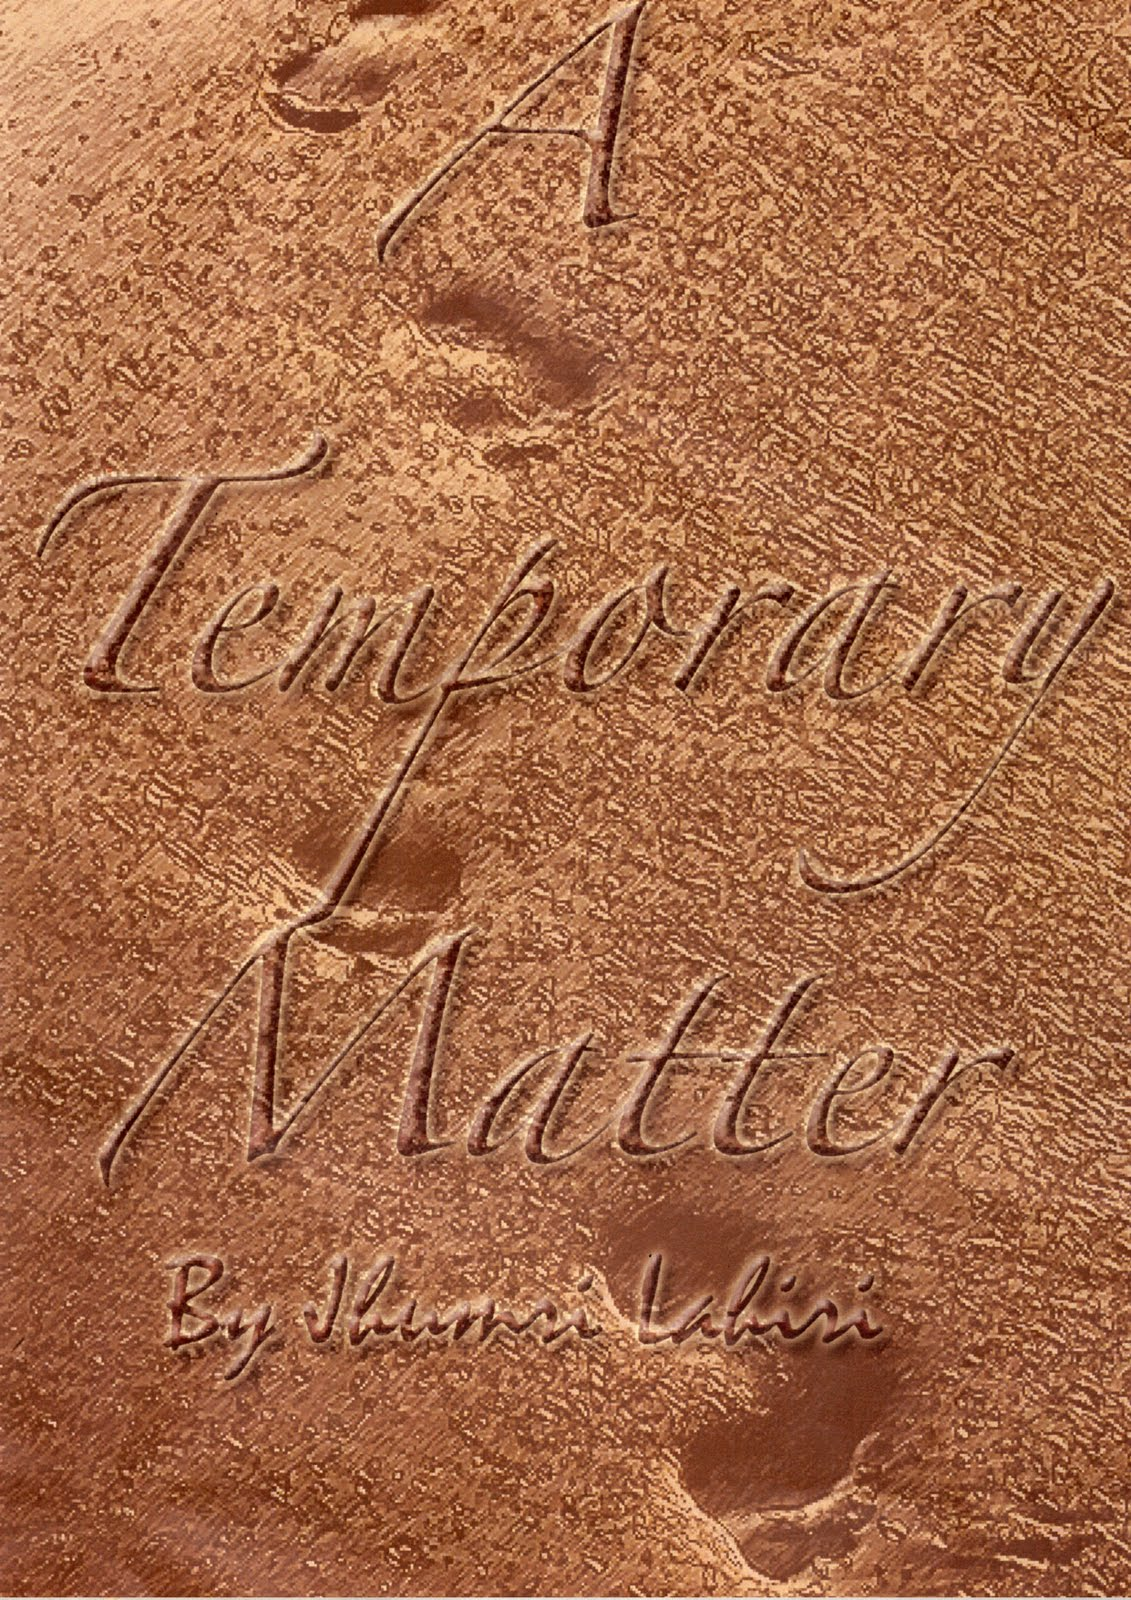 the temporary matter